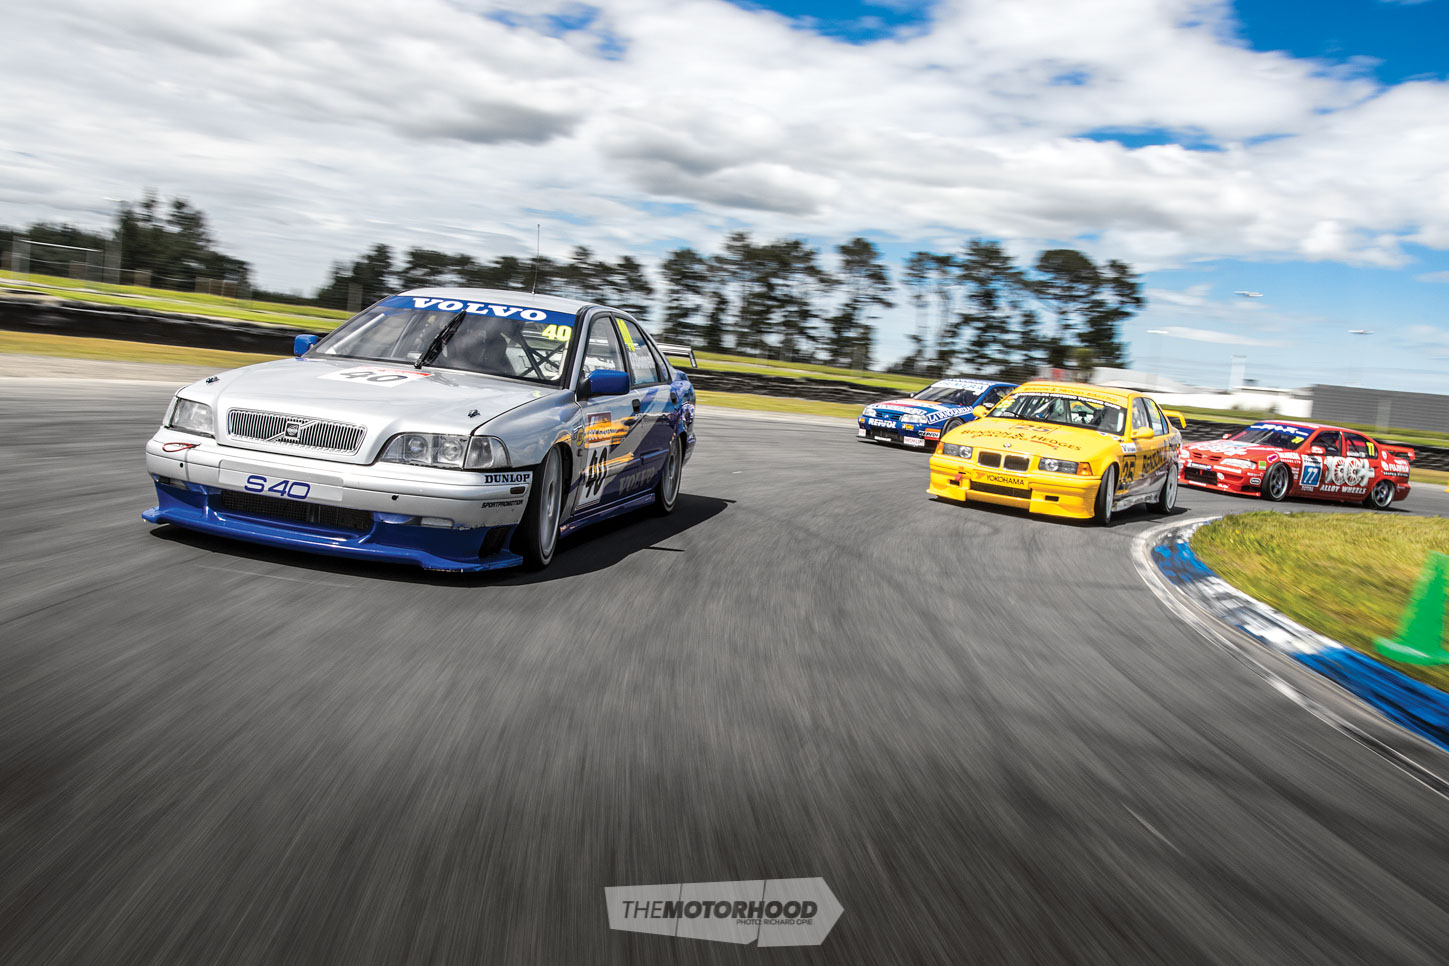 Two-litre terrors: New Zealand's stash of '90s touring cars